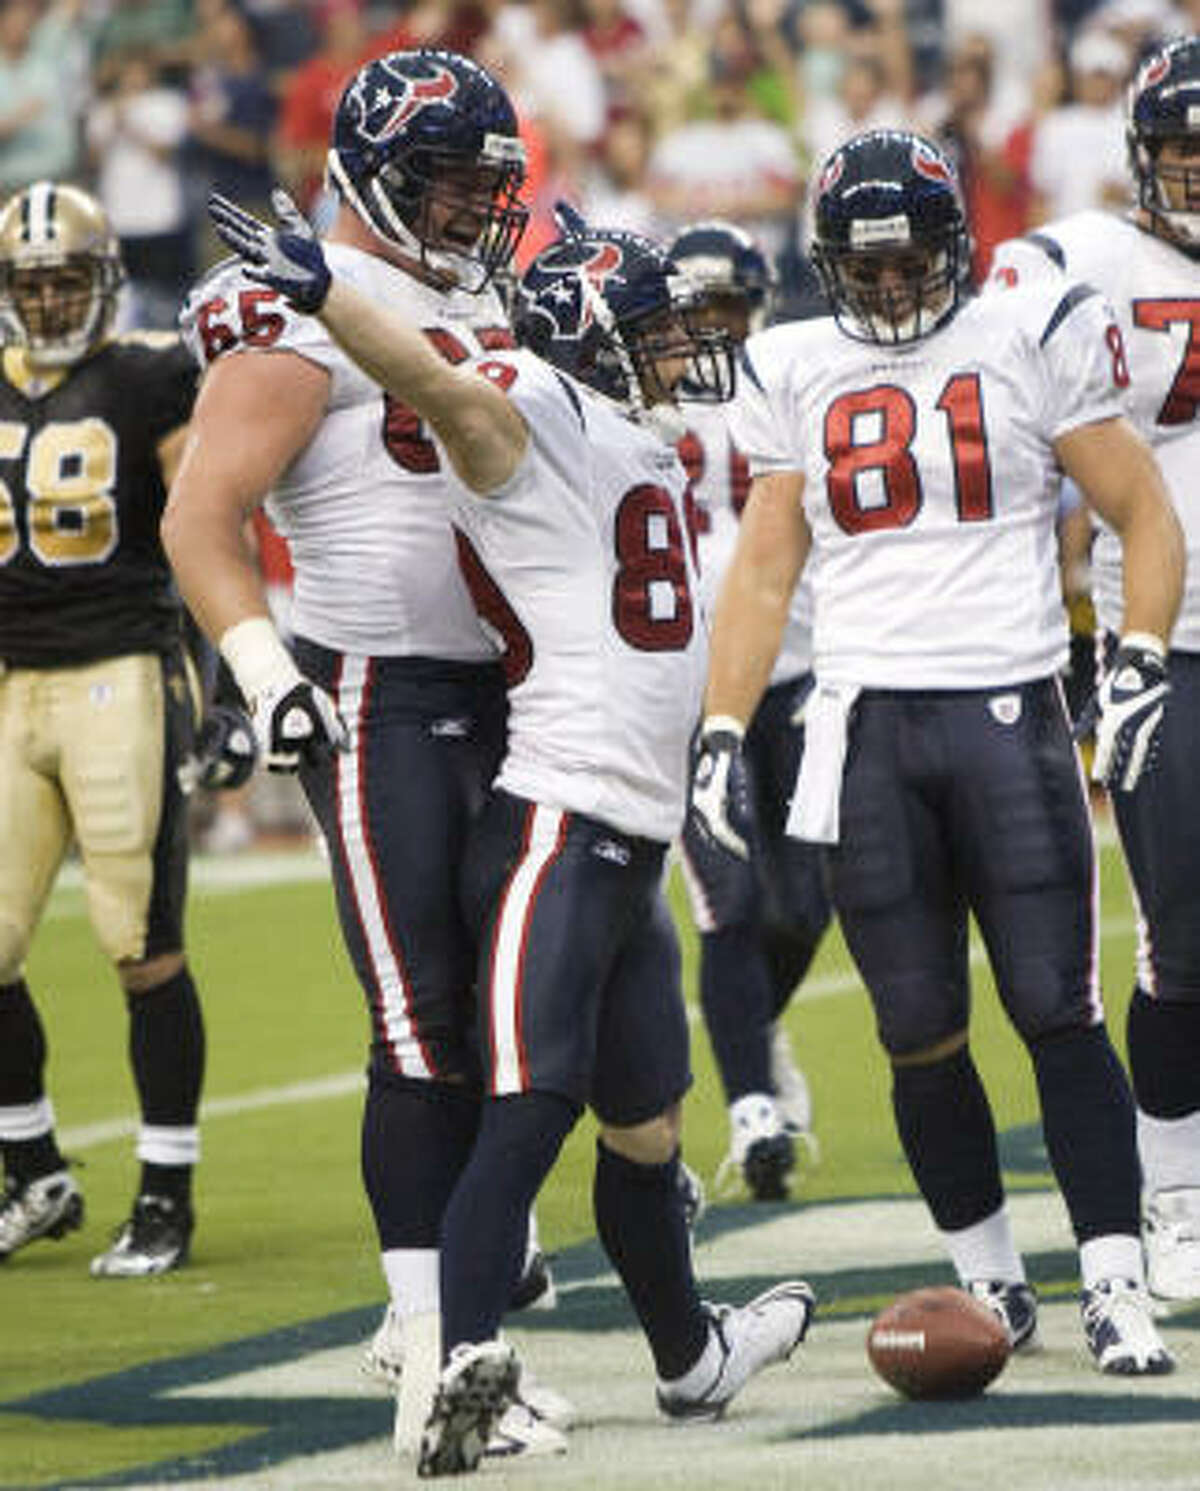 Texans wide receiver David Anderson celebrates his eight-yard touchdown reception from Matt Shaub during the first quarter.